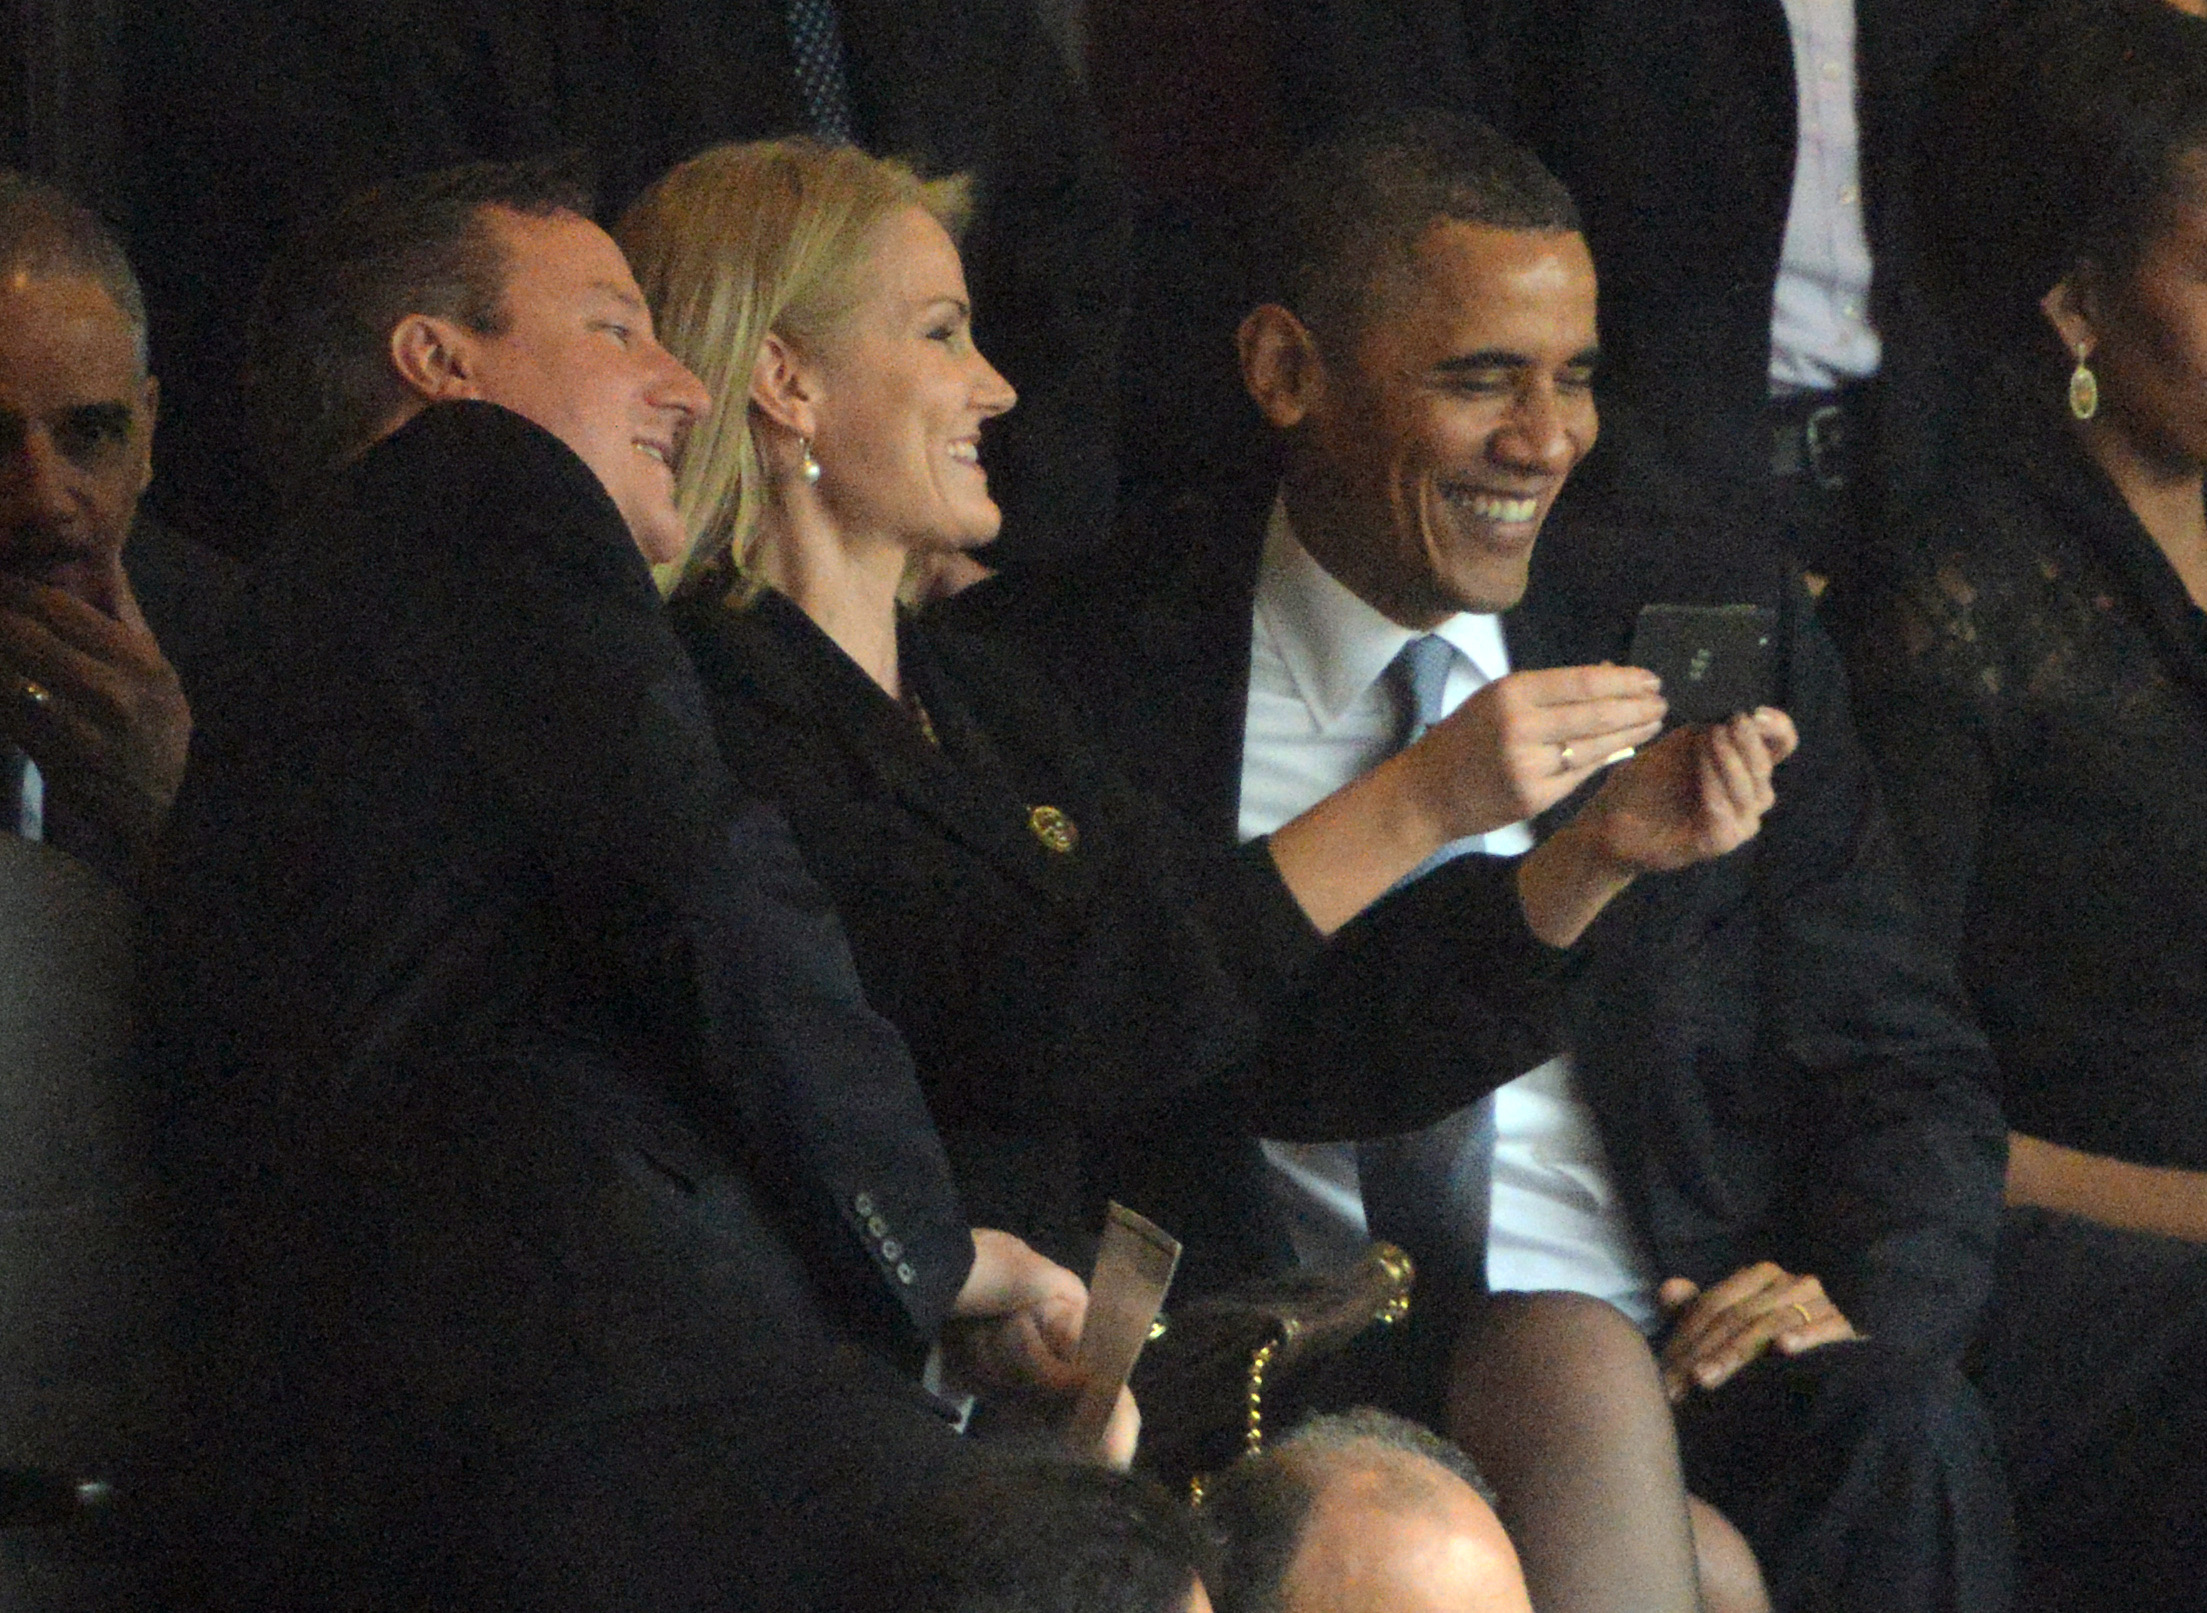 US President Barack Obama (R) and British Prime Minister David Cameron pose for a picture with Denmark's Prime Minister Helle Thorning Schmidt (C) during the memorial service of South African former president Nelson Mandela at the FNB Stadium (Soccer City) in Johannesburg on December 10, 2013. Mandela, the revered icon of the anti-apartheid struggle in South Africa and one of the towering political figures of the 20th century, died in Johannesburg on December 5 at age 95. AFP PHOTO / ROBERTO SCHMIDT        (Photo credit should read ROBERTO SCHMIDT/AFP/Getty Images)